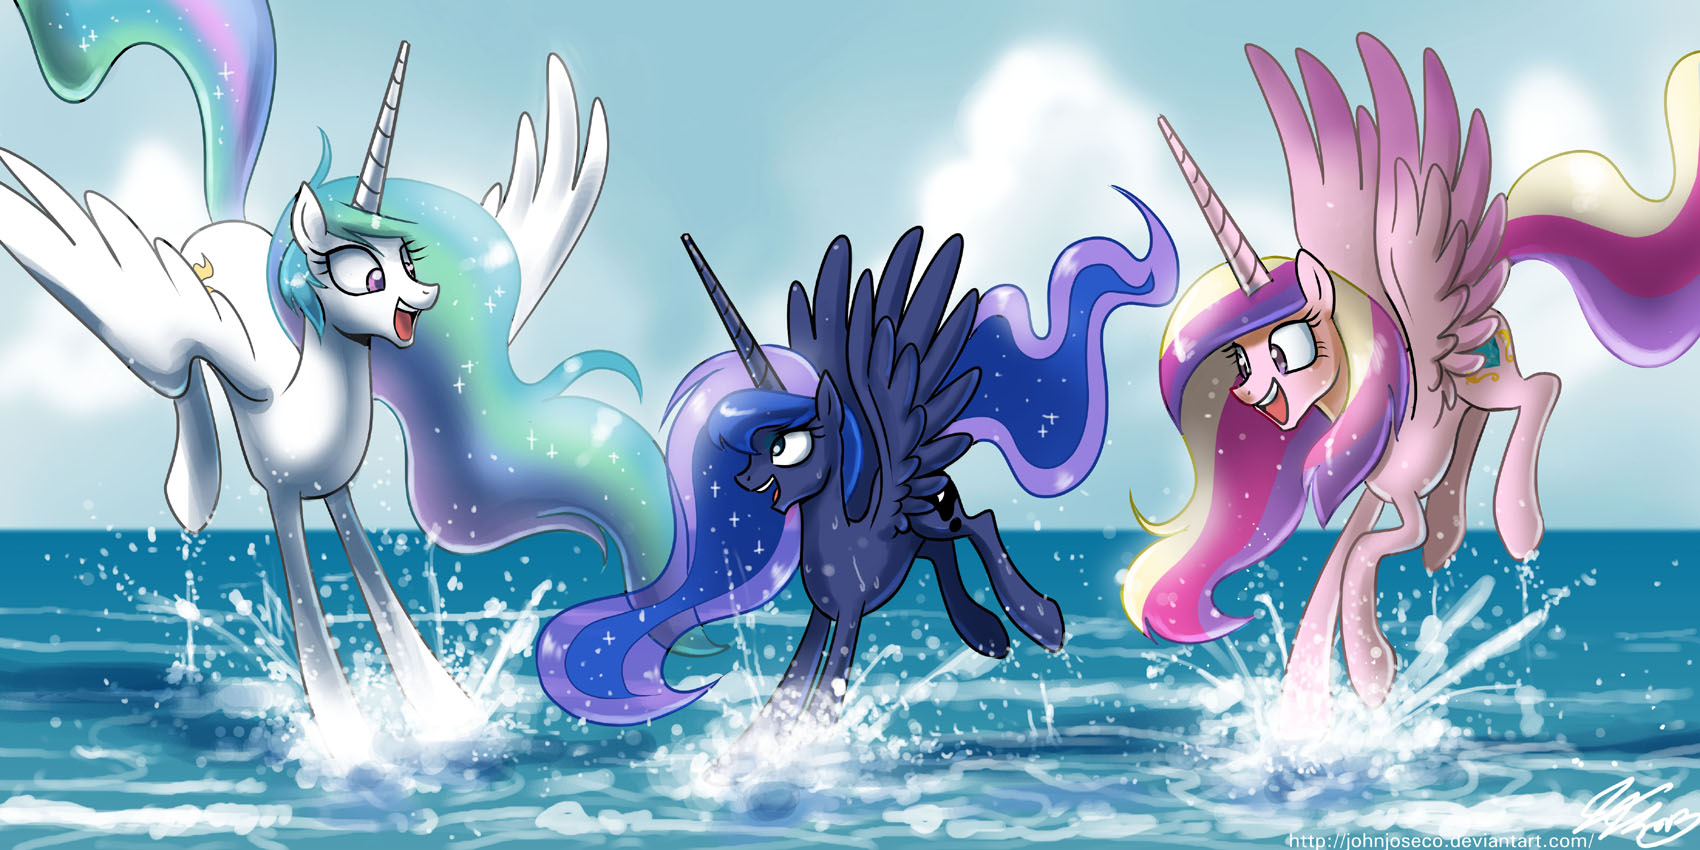 Princess Luna Images Awesome Pics HD Wallpaper And Background Photos